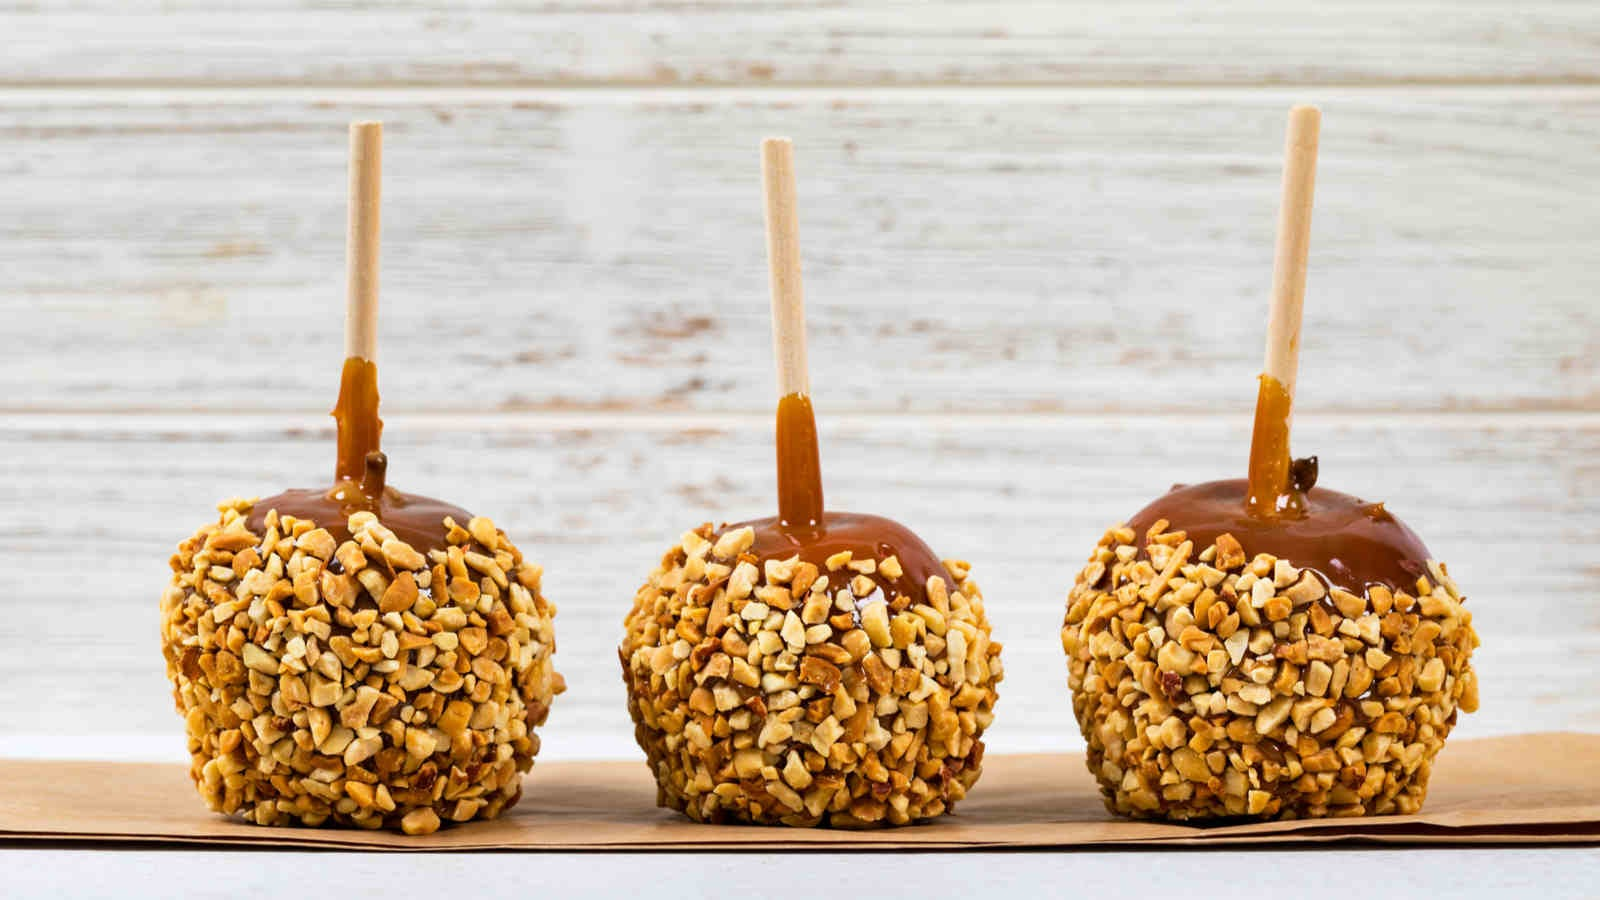 Three caramel apples dipped in chopped nuts, sitting upside-down on a table.